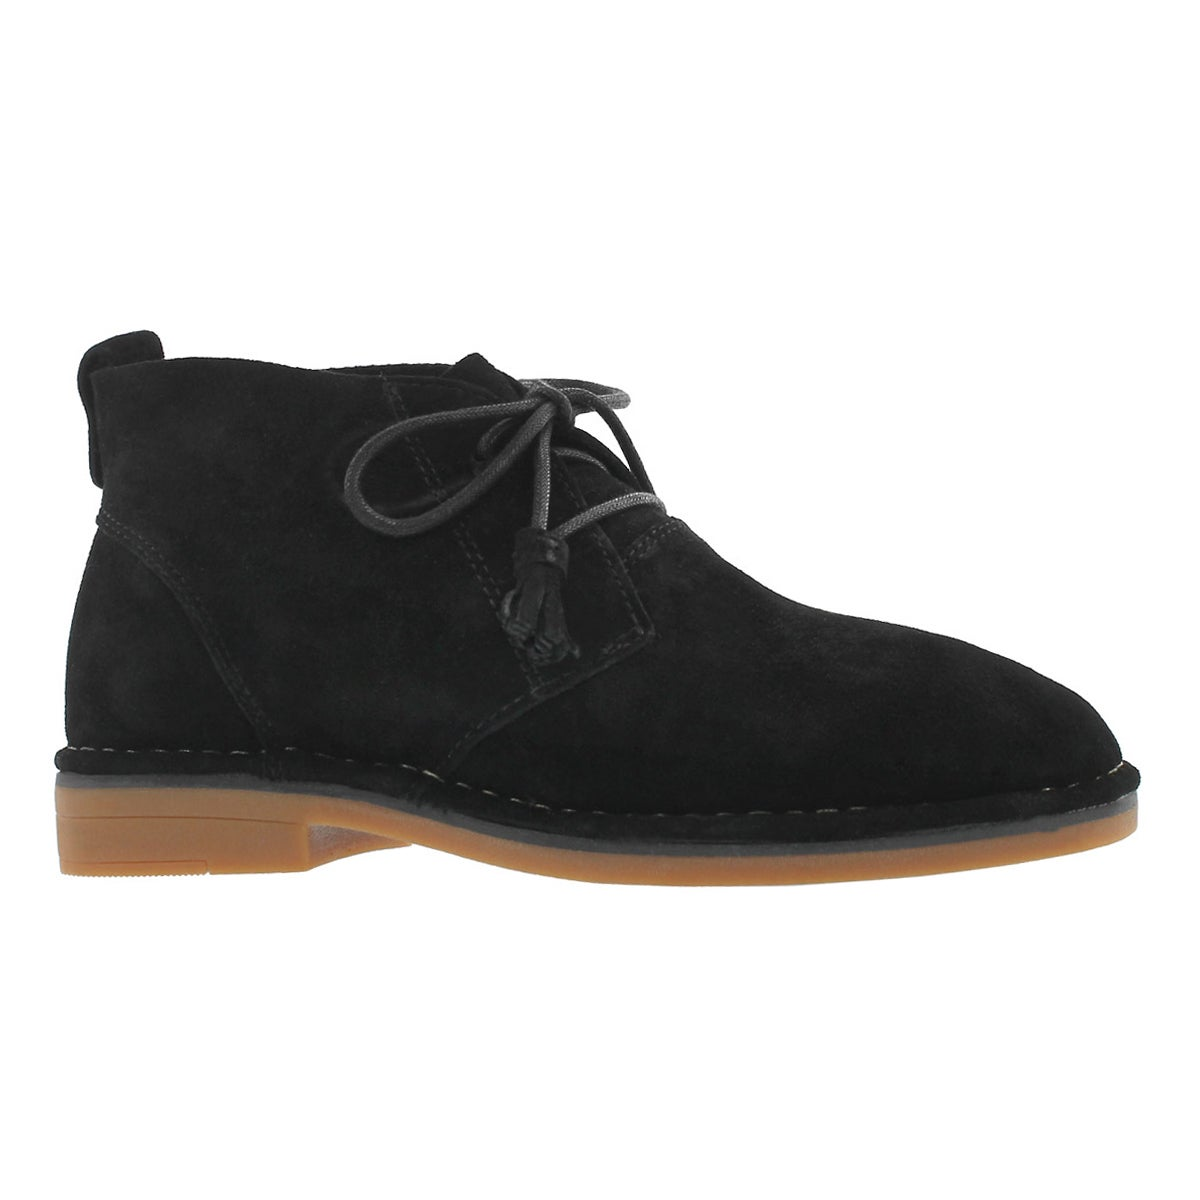 Women's CYRA CATELYN black chukka boot